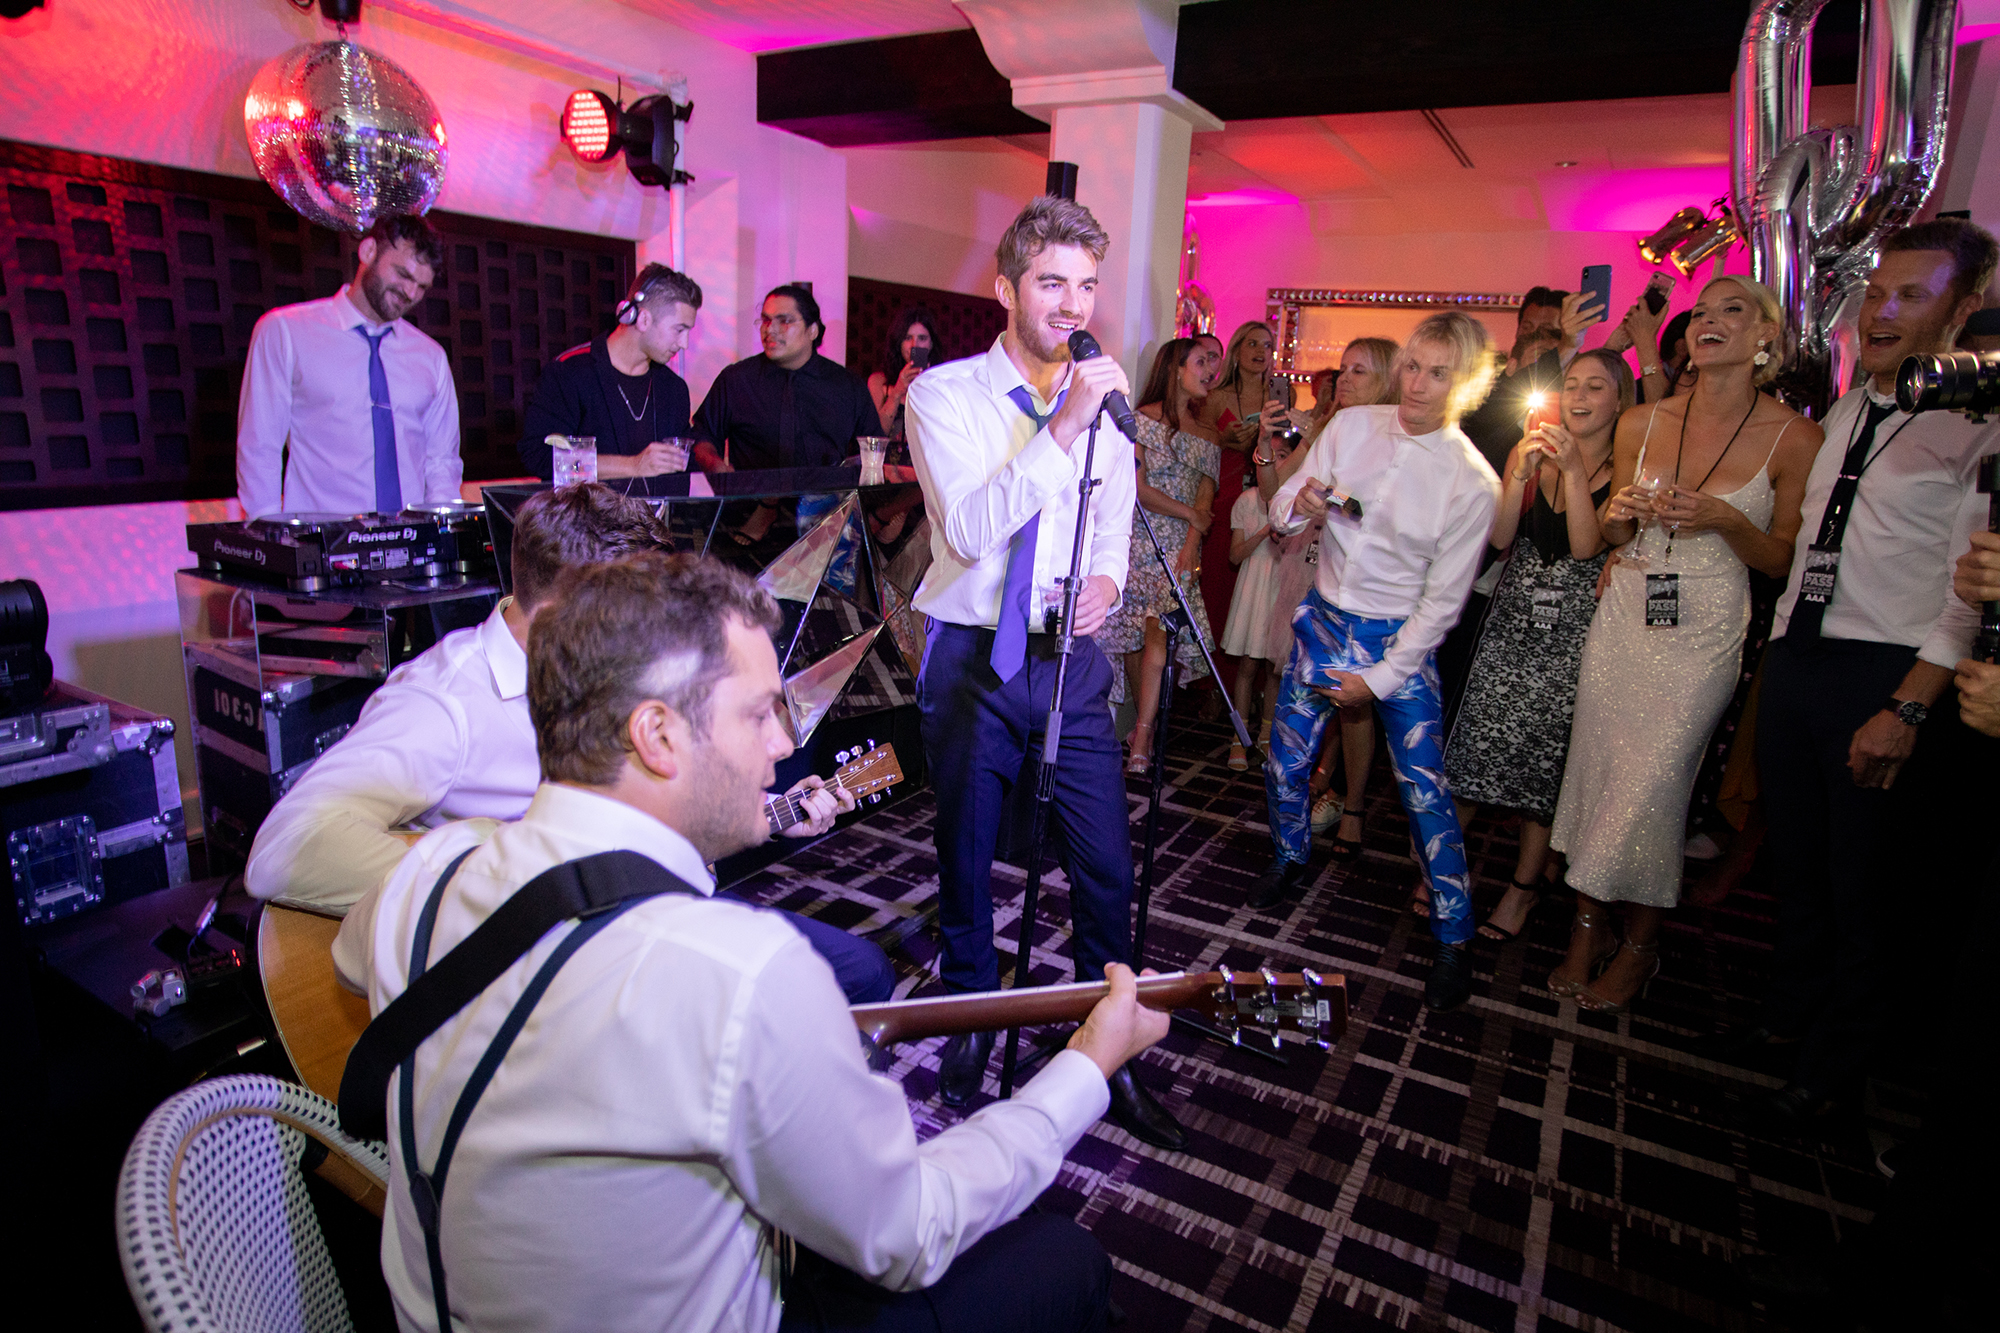 ashlie adam alpert wedding after party chainsmokers